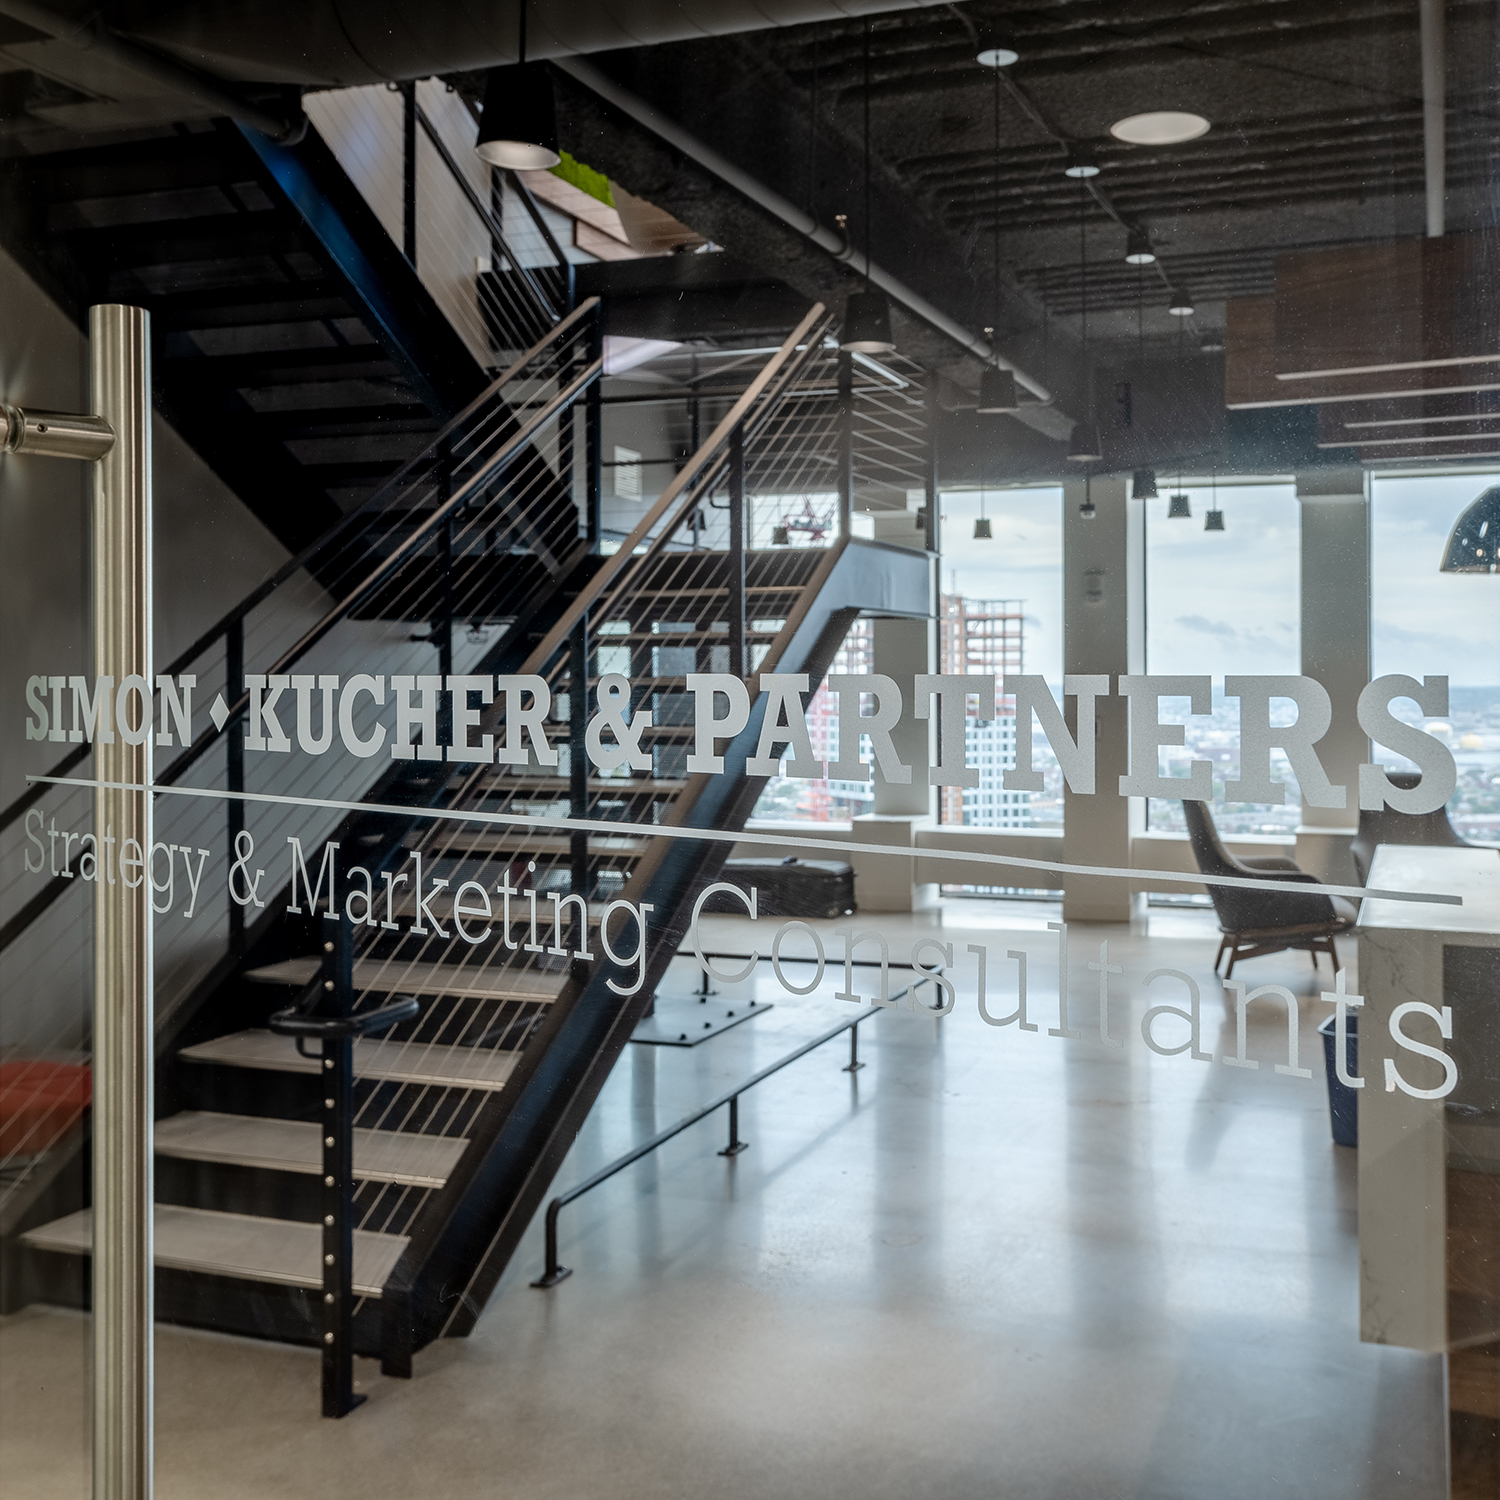 Simon + Kucher & Partners